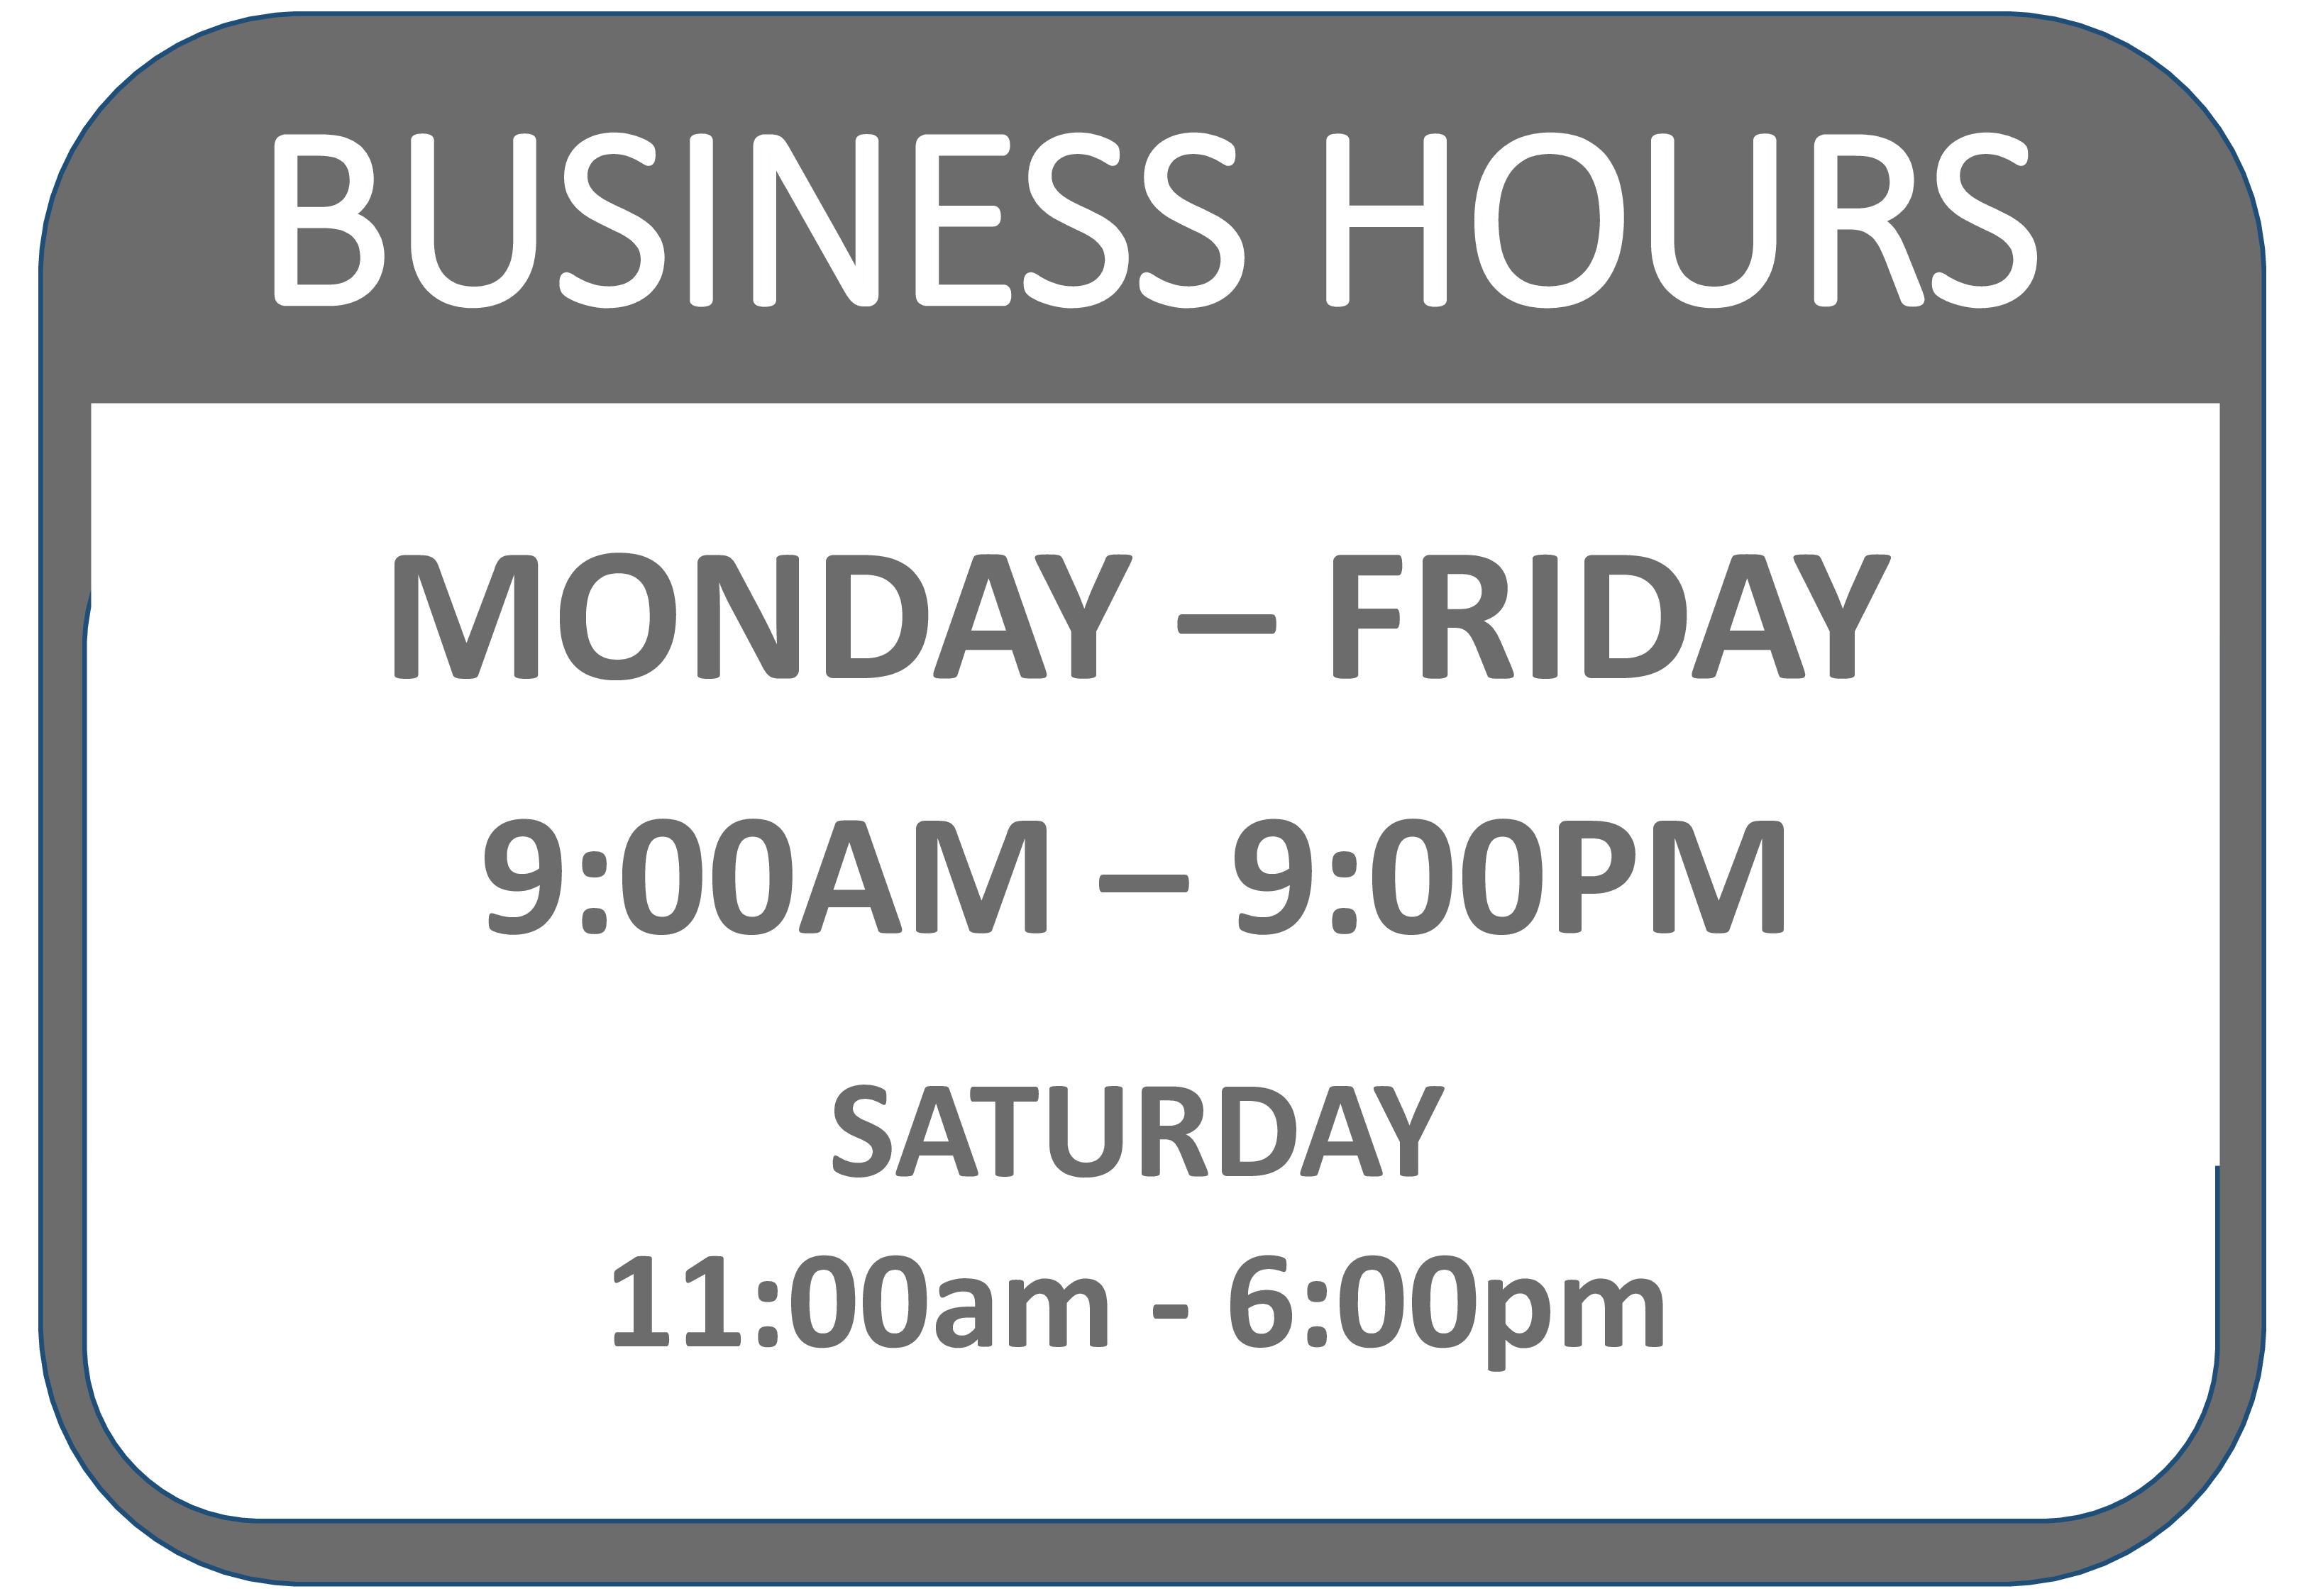 Free business hours signage templates at allbusinesstemplates business hours signage main image download template friedricerecipe Image collections